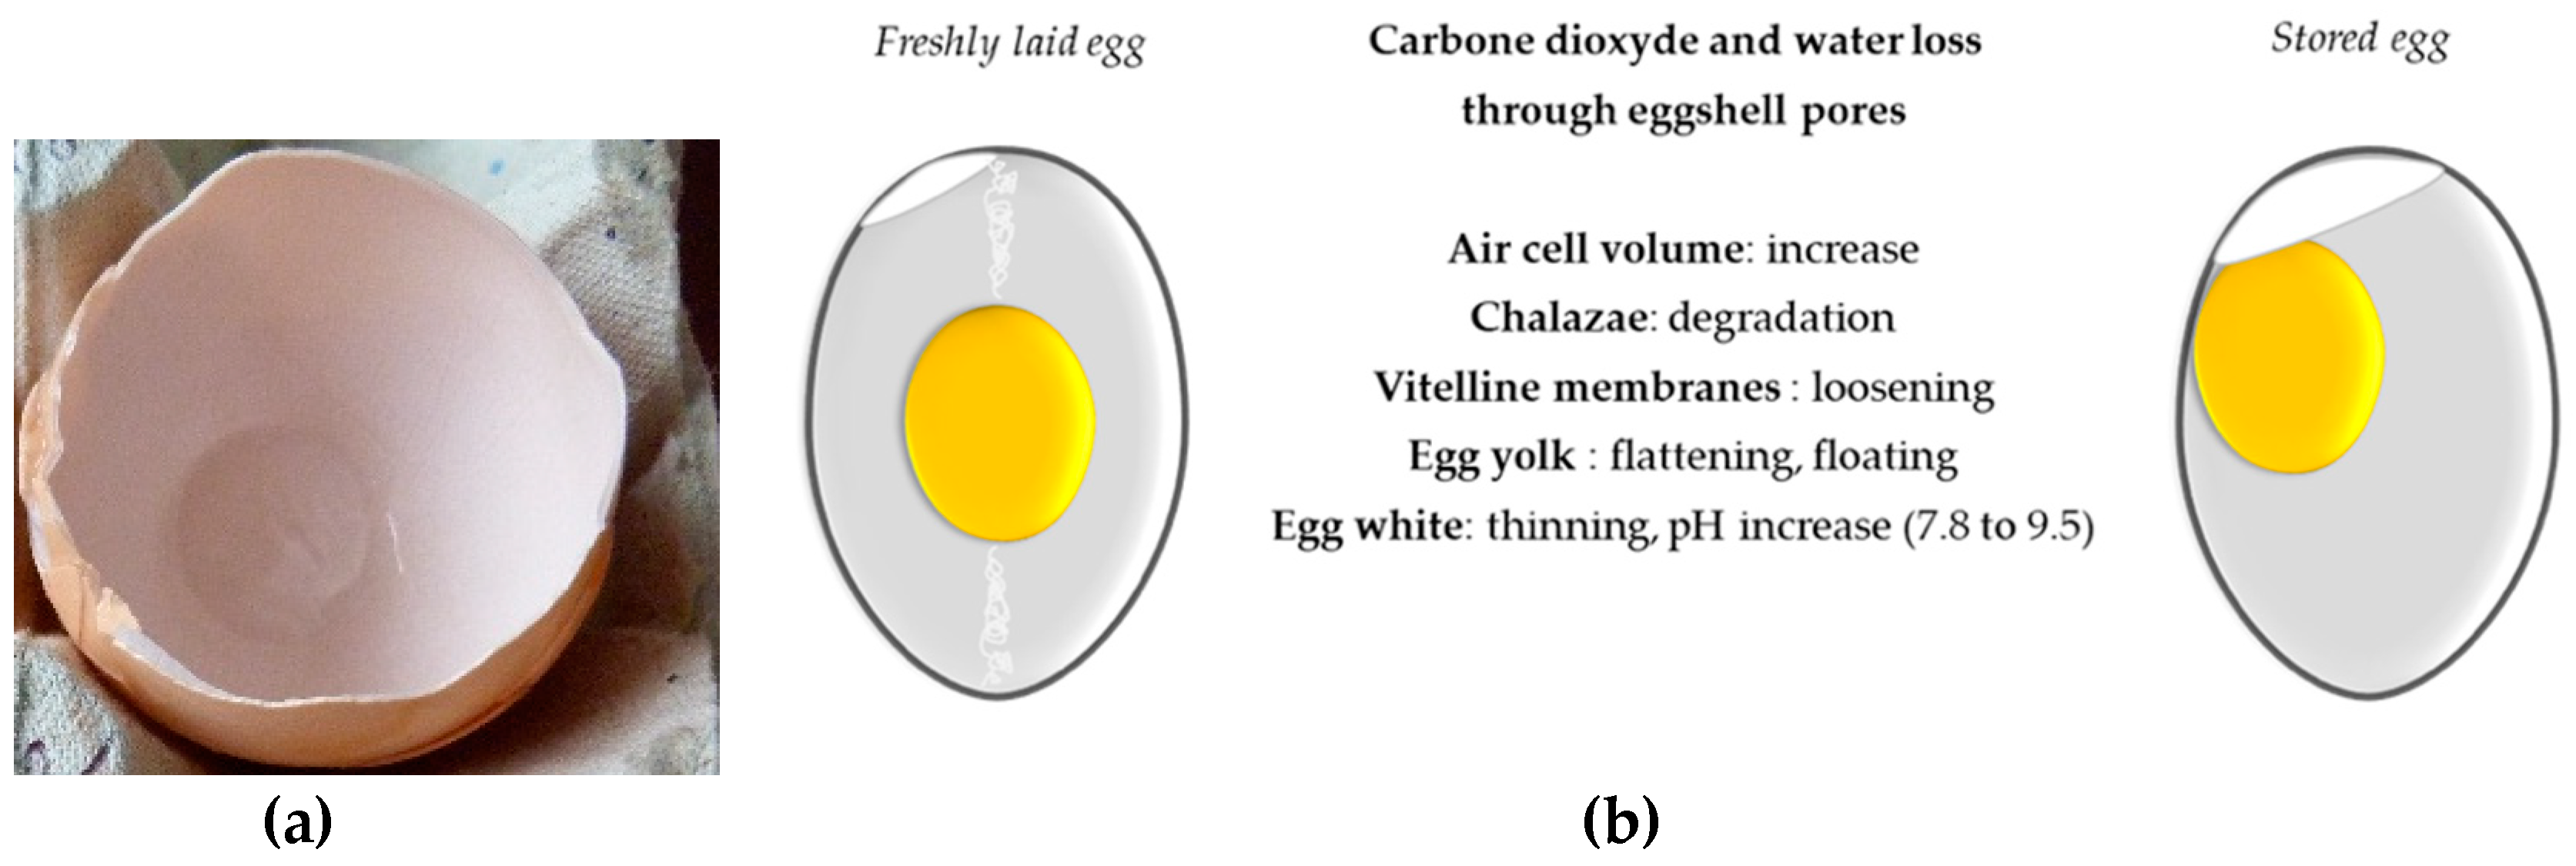 Nutrients Free Full Text The Golden Egg Nutritional Value Bioactivities And Emerging Benefits For Human Health Html